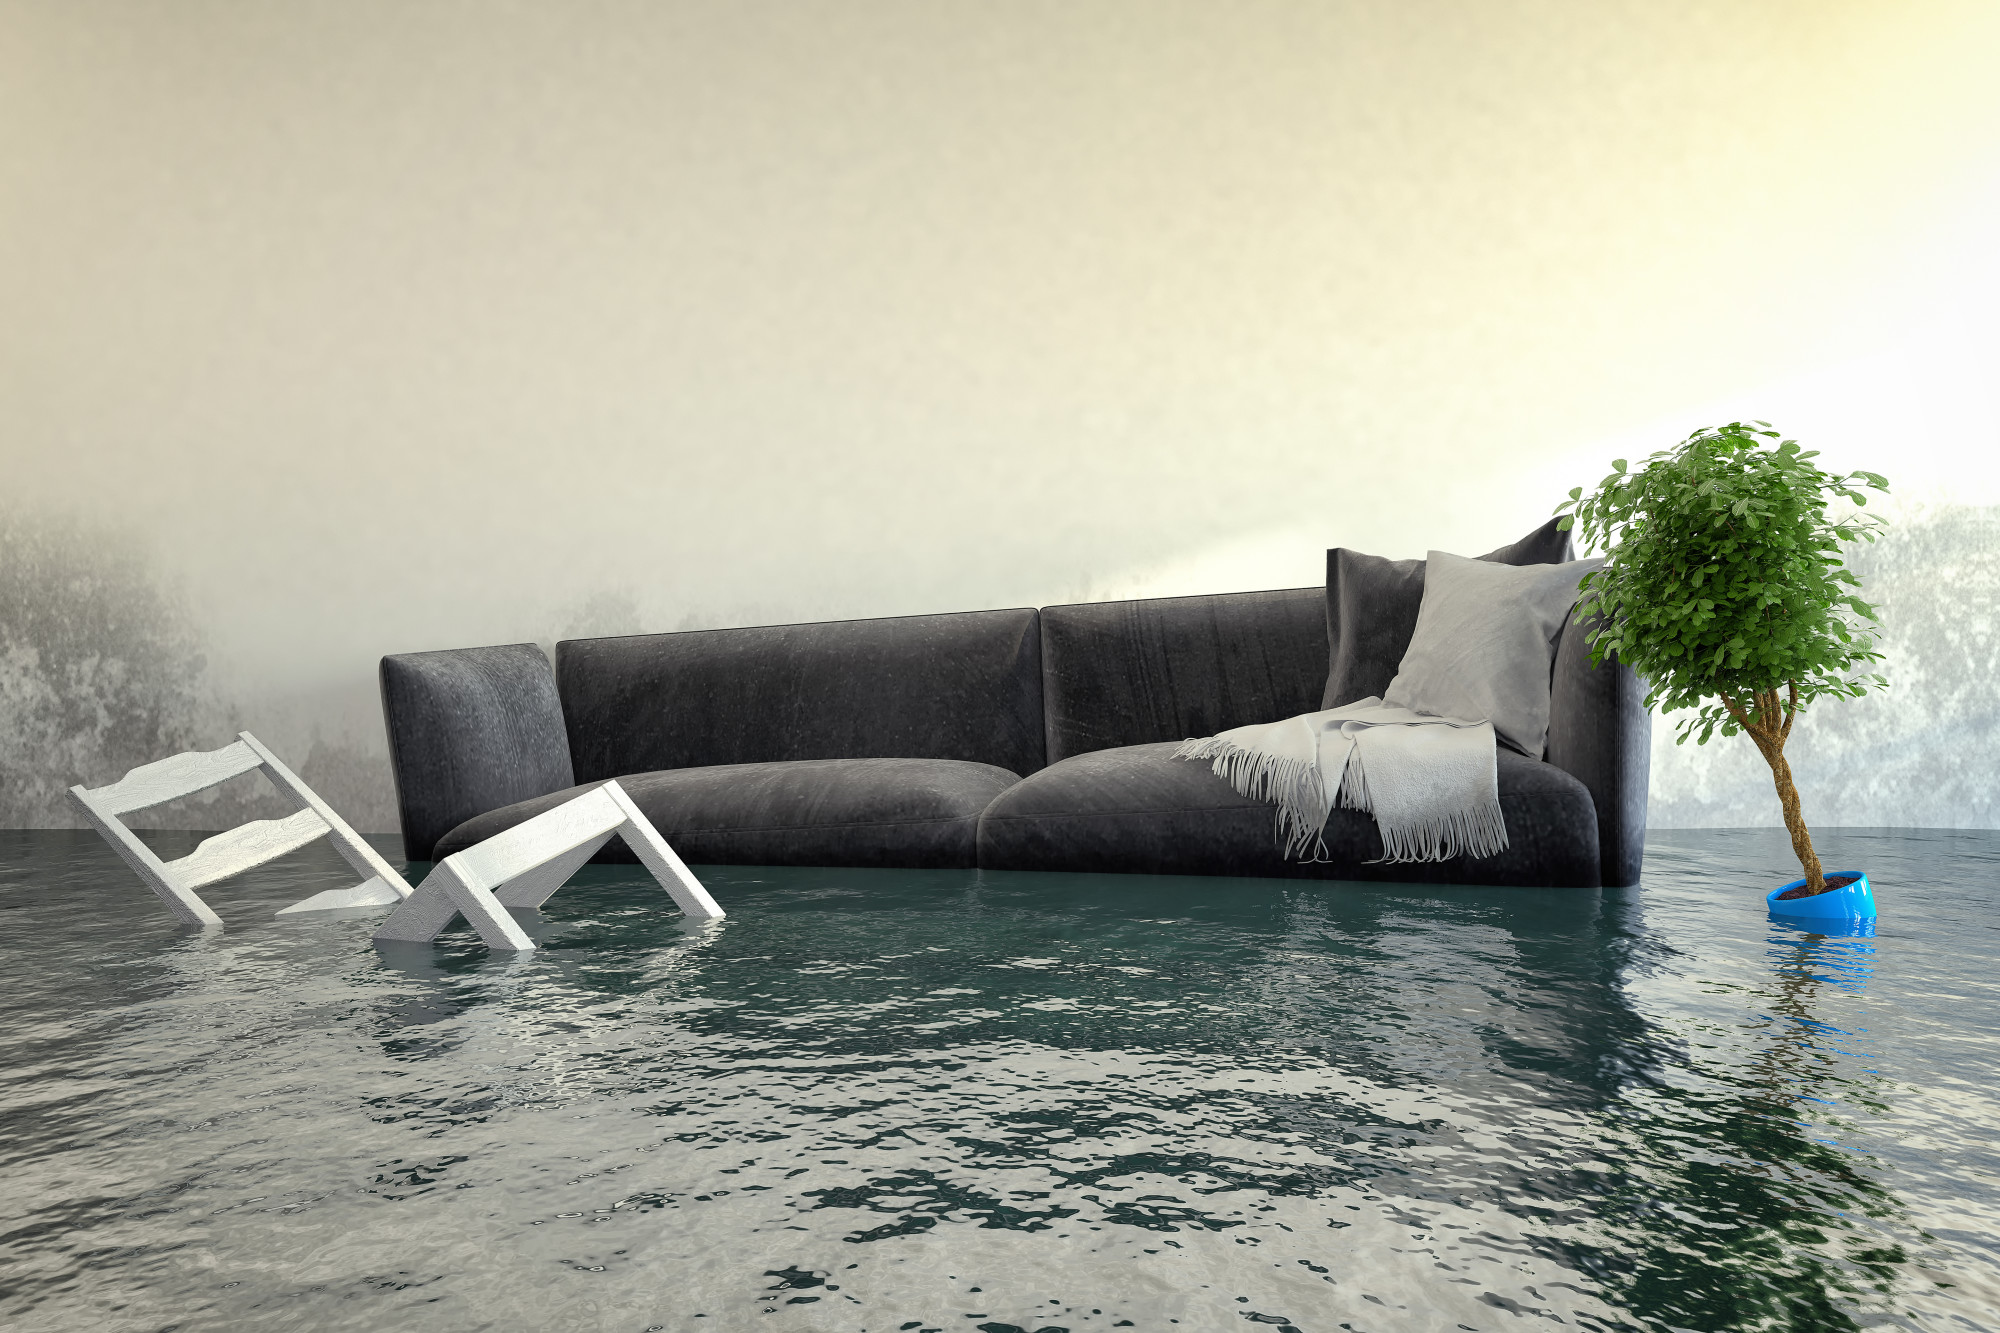 How Much Is Flood Insurance? A Basic Price Guide